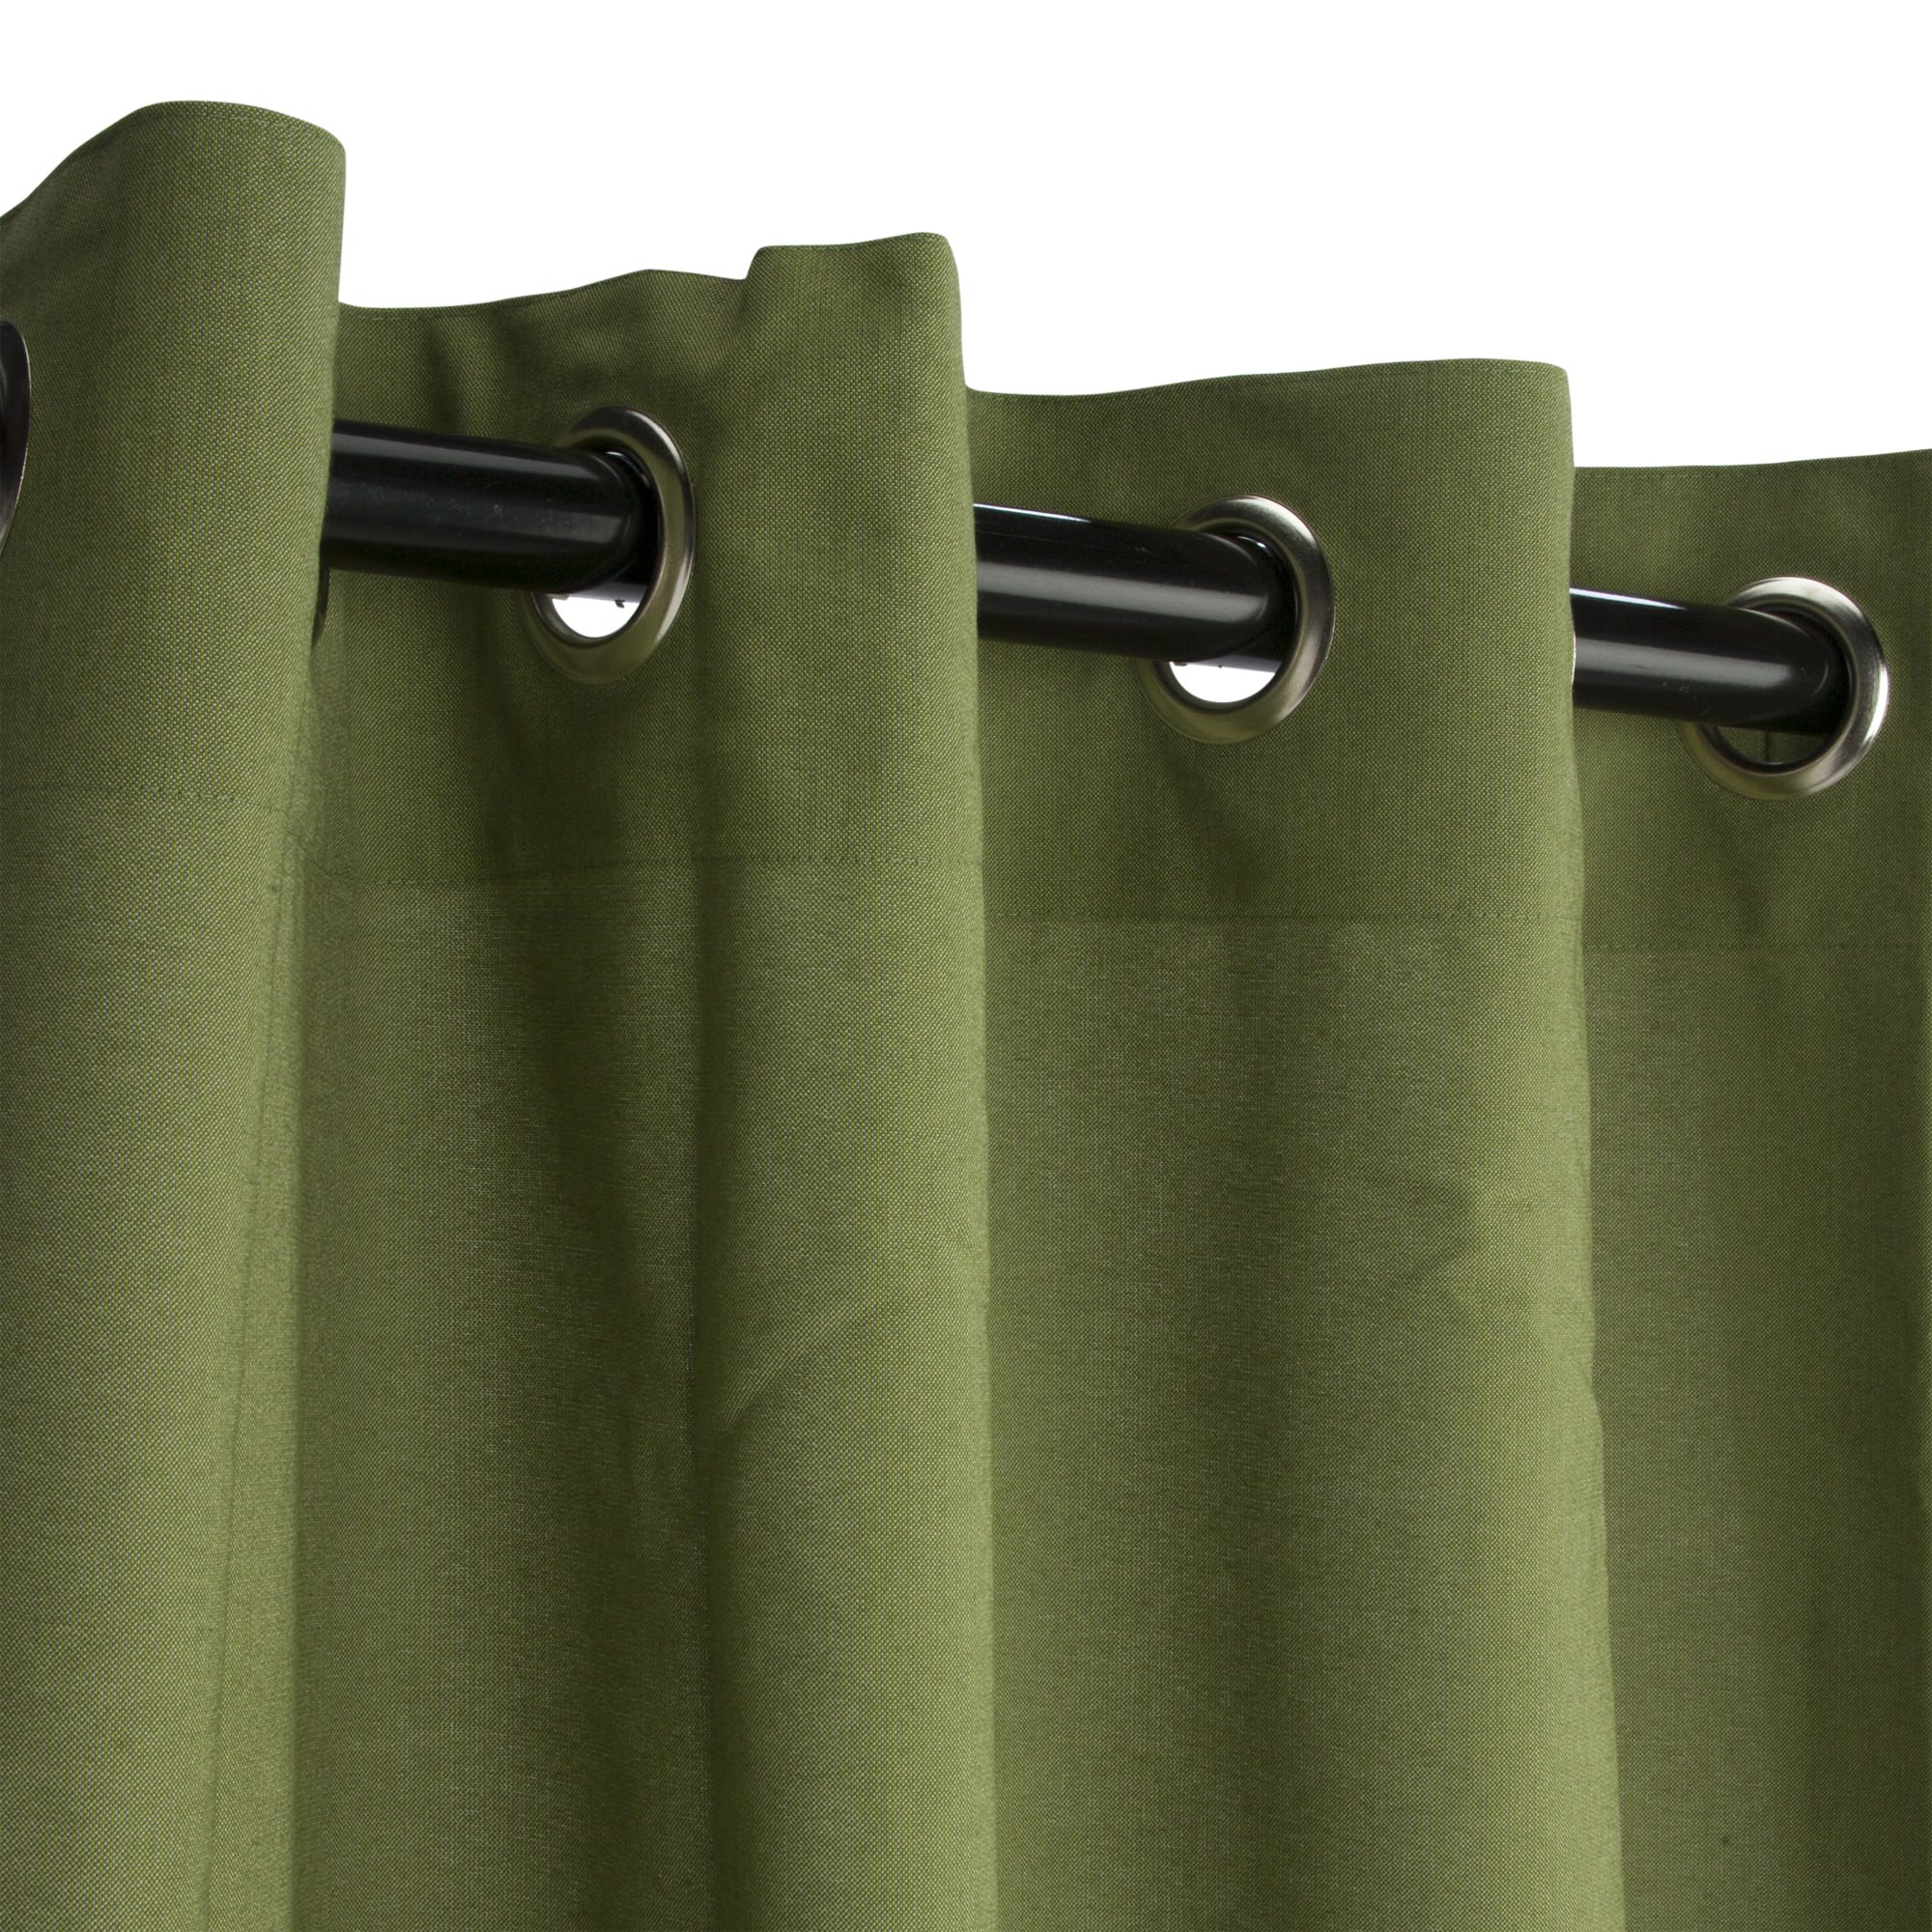 Pergola Drapes | Outdoor Pillows Sunbrella | Sunbrella Curtains